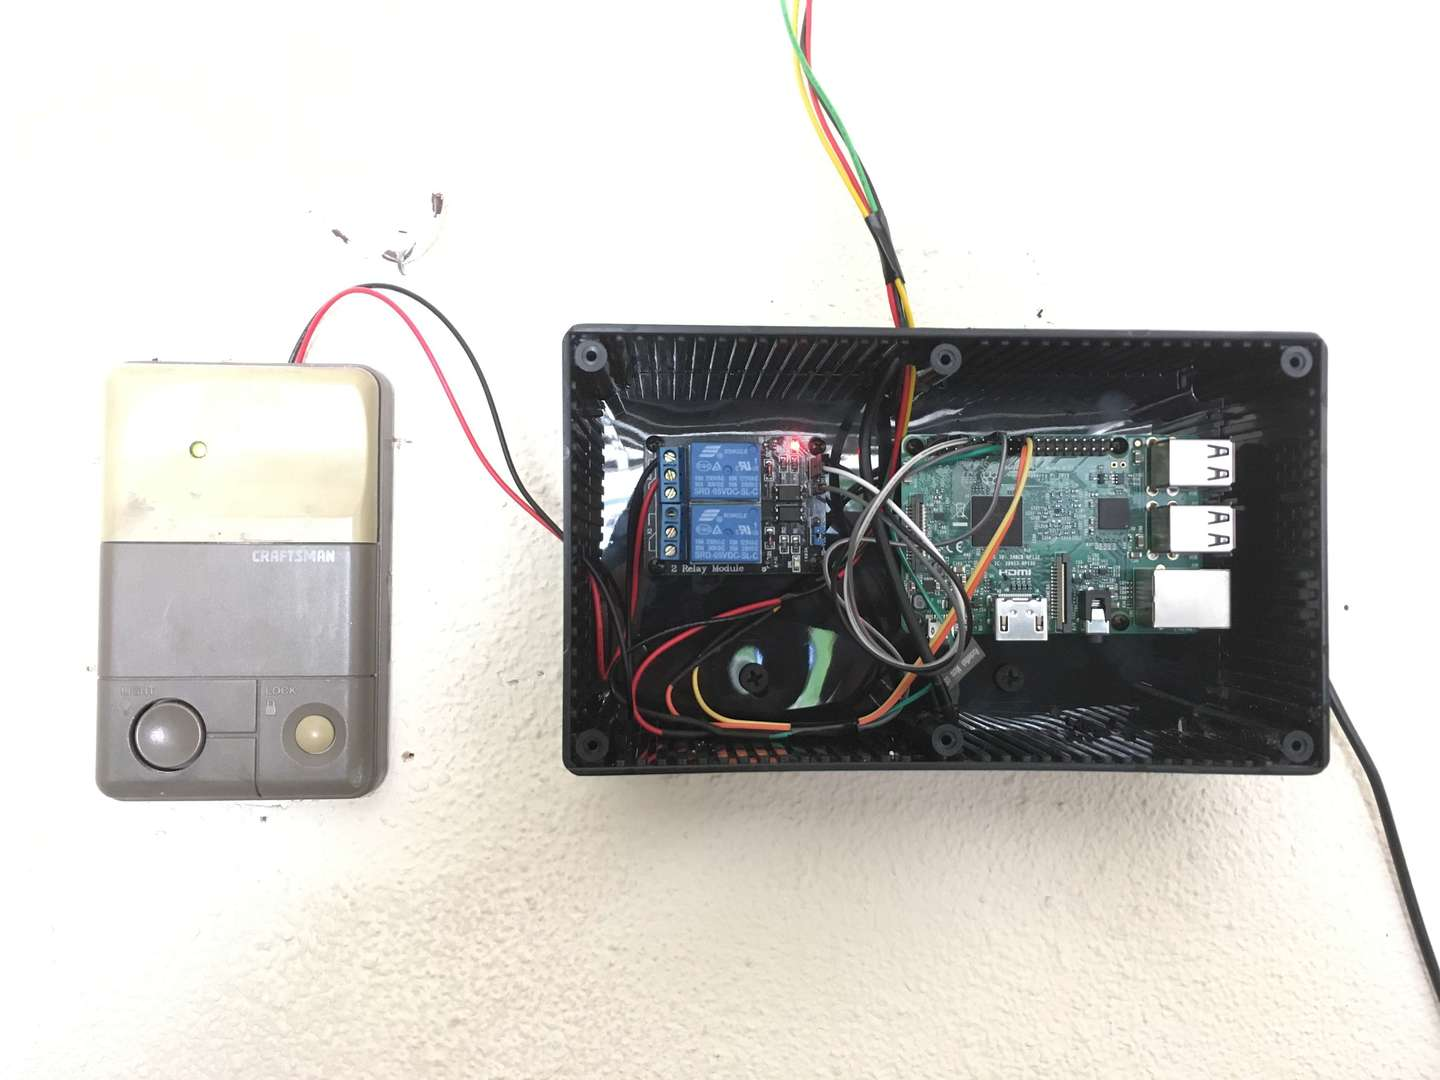 The completed garage door opener